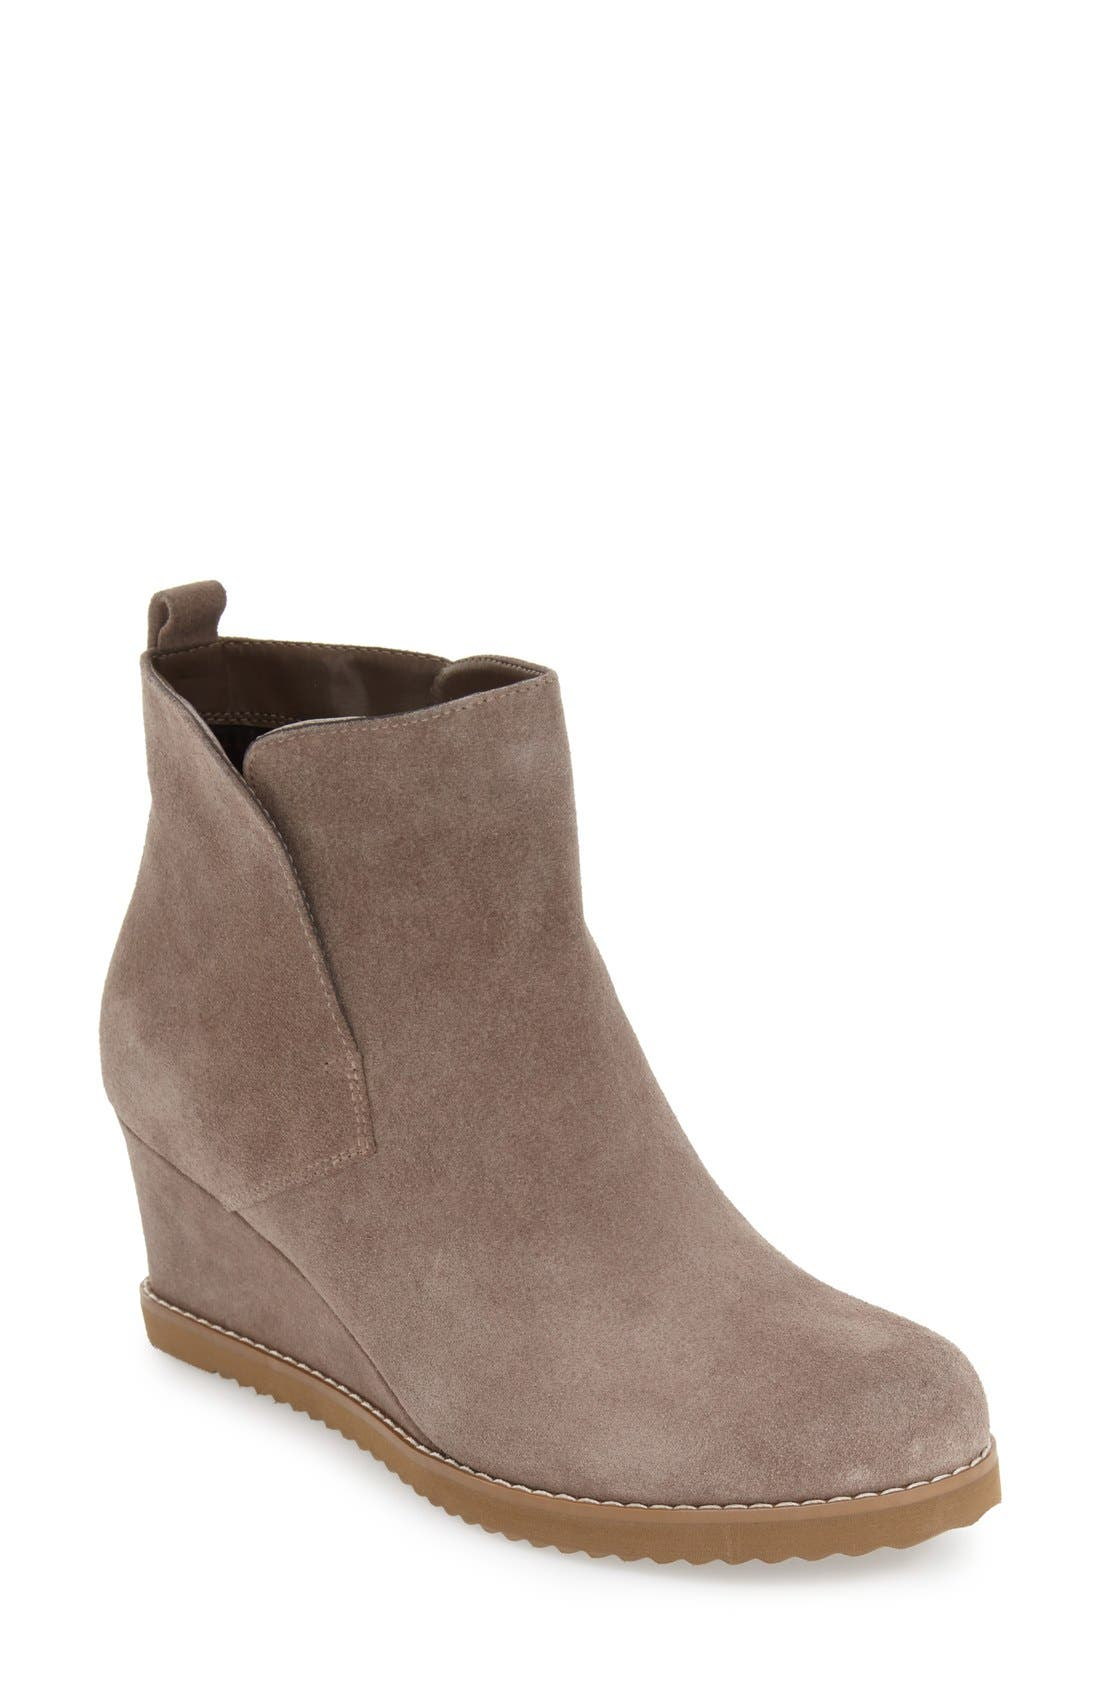 BLONDO 'Karla' Waterproof Wedge Bootie